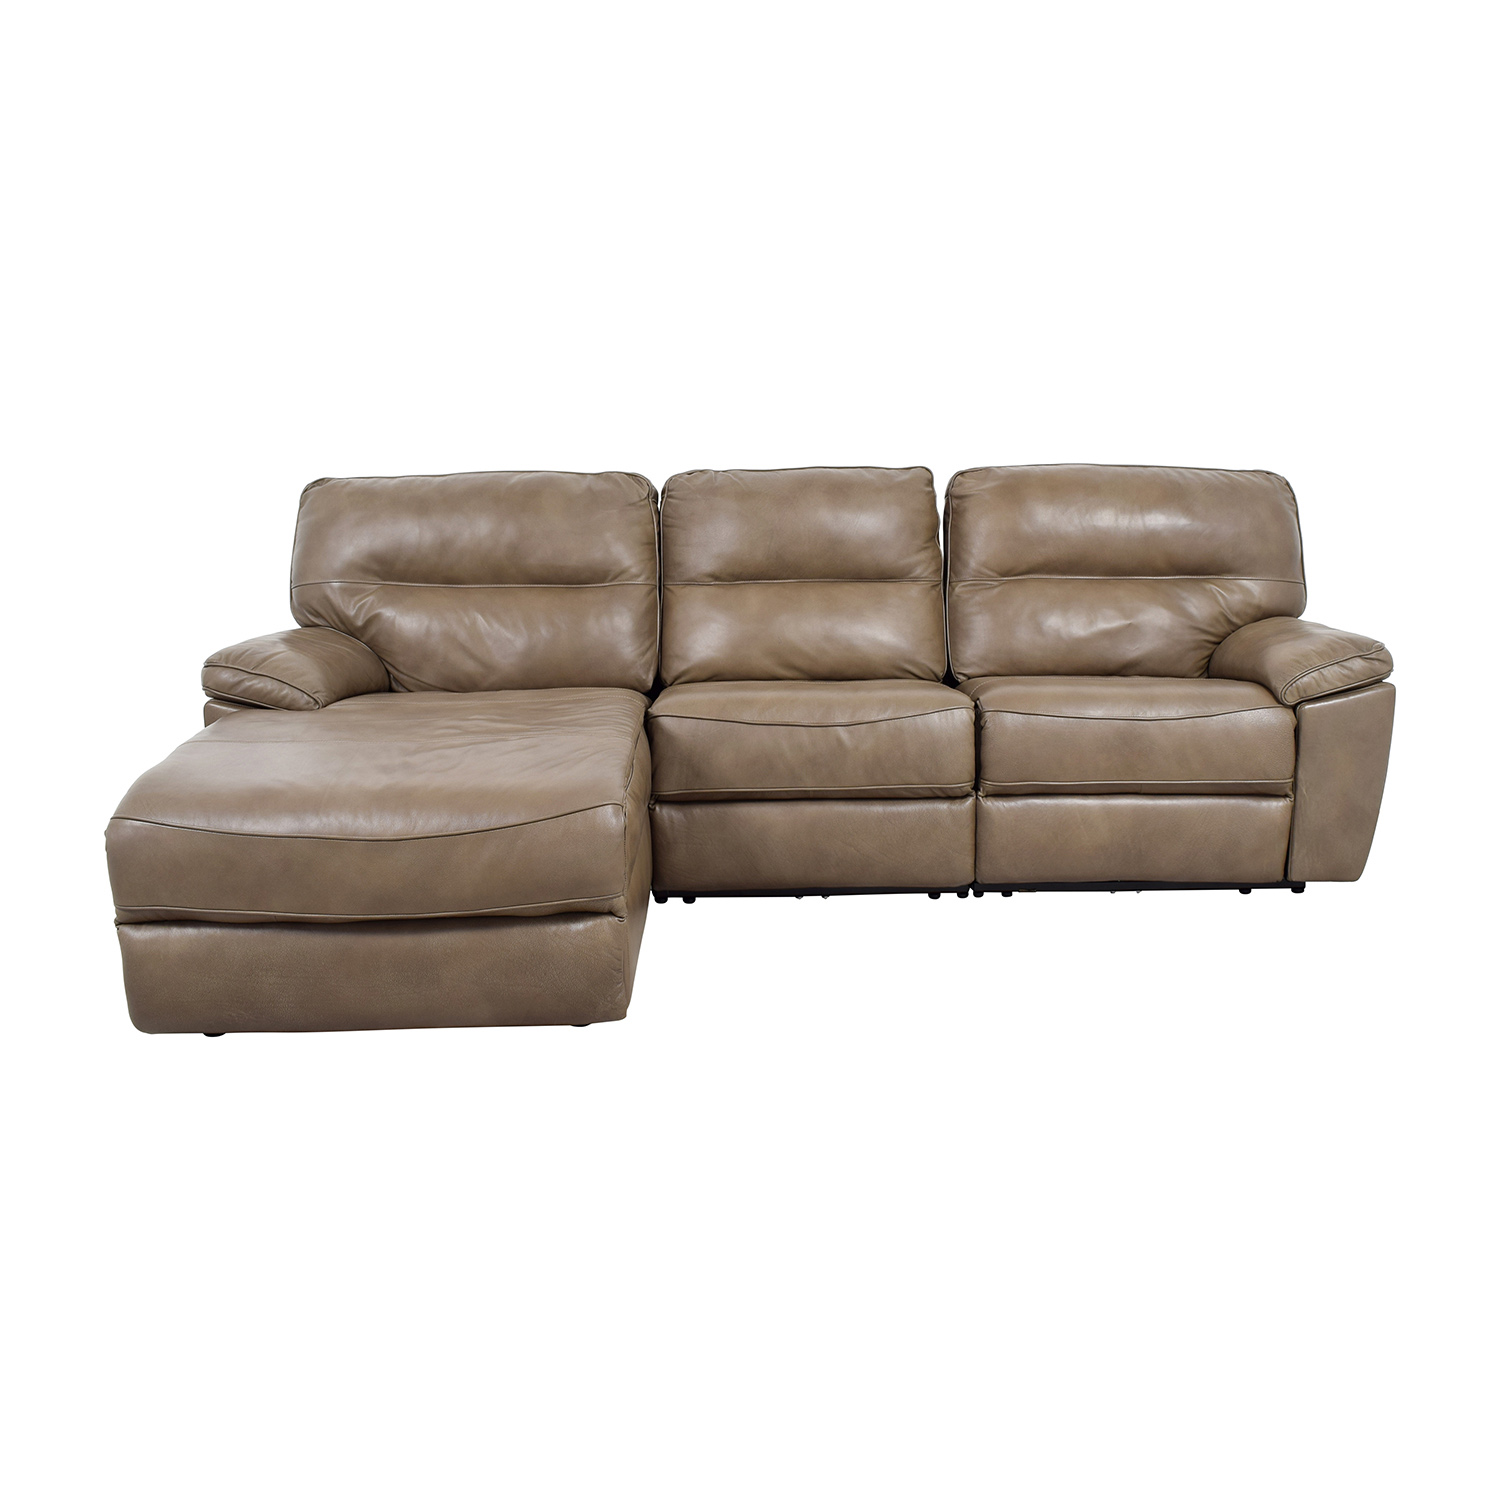 Chaise lounge recliners full size of living for Chaise and recliner